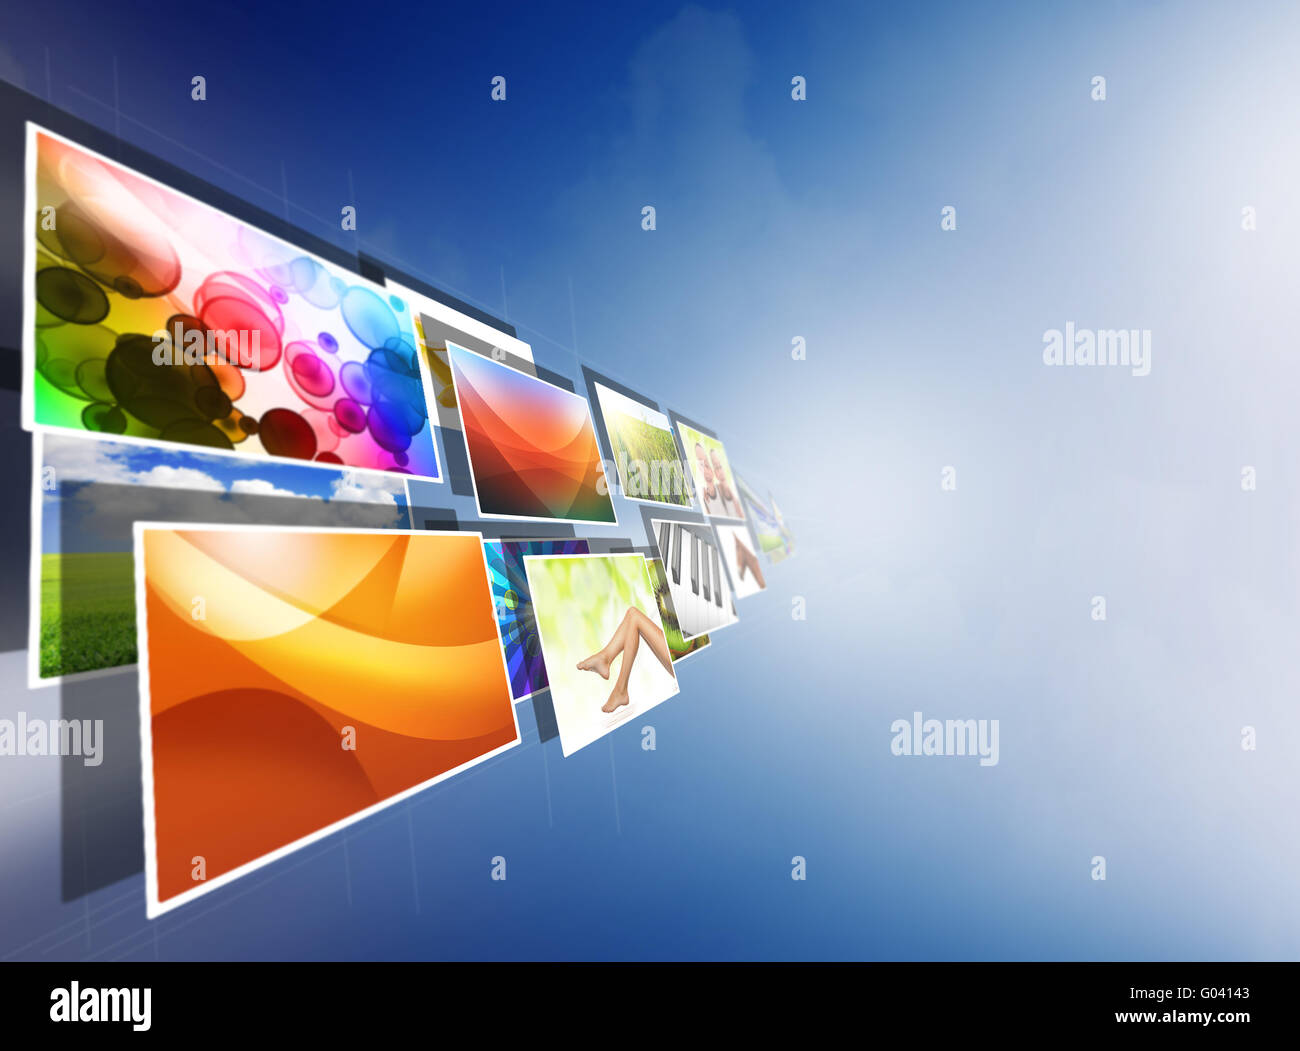 images streaming from the deep over sky blue background - Stock Image